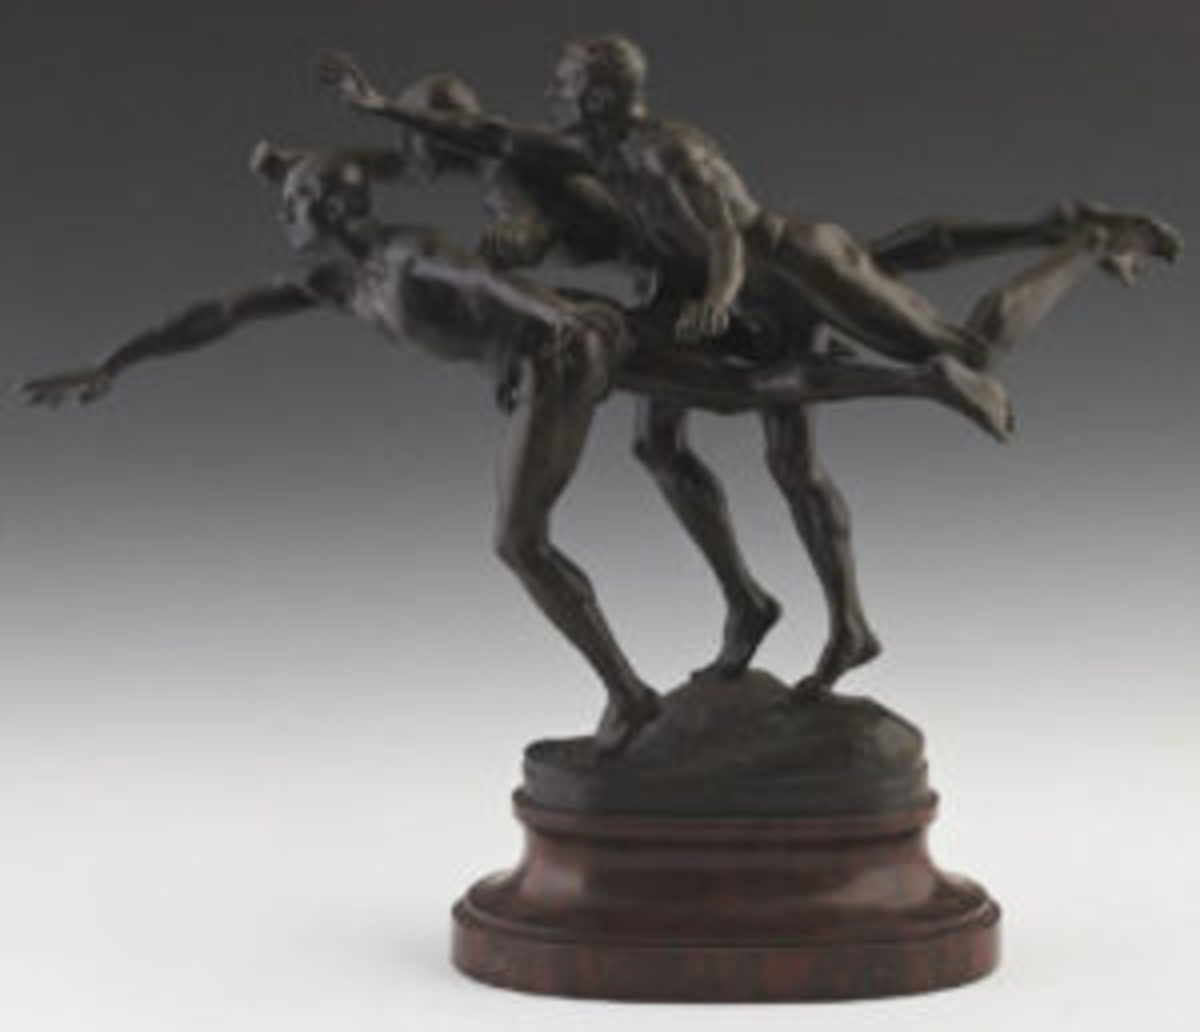 Painted bronze group sculpture by Boucher